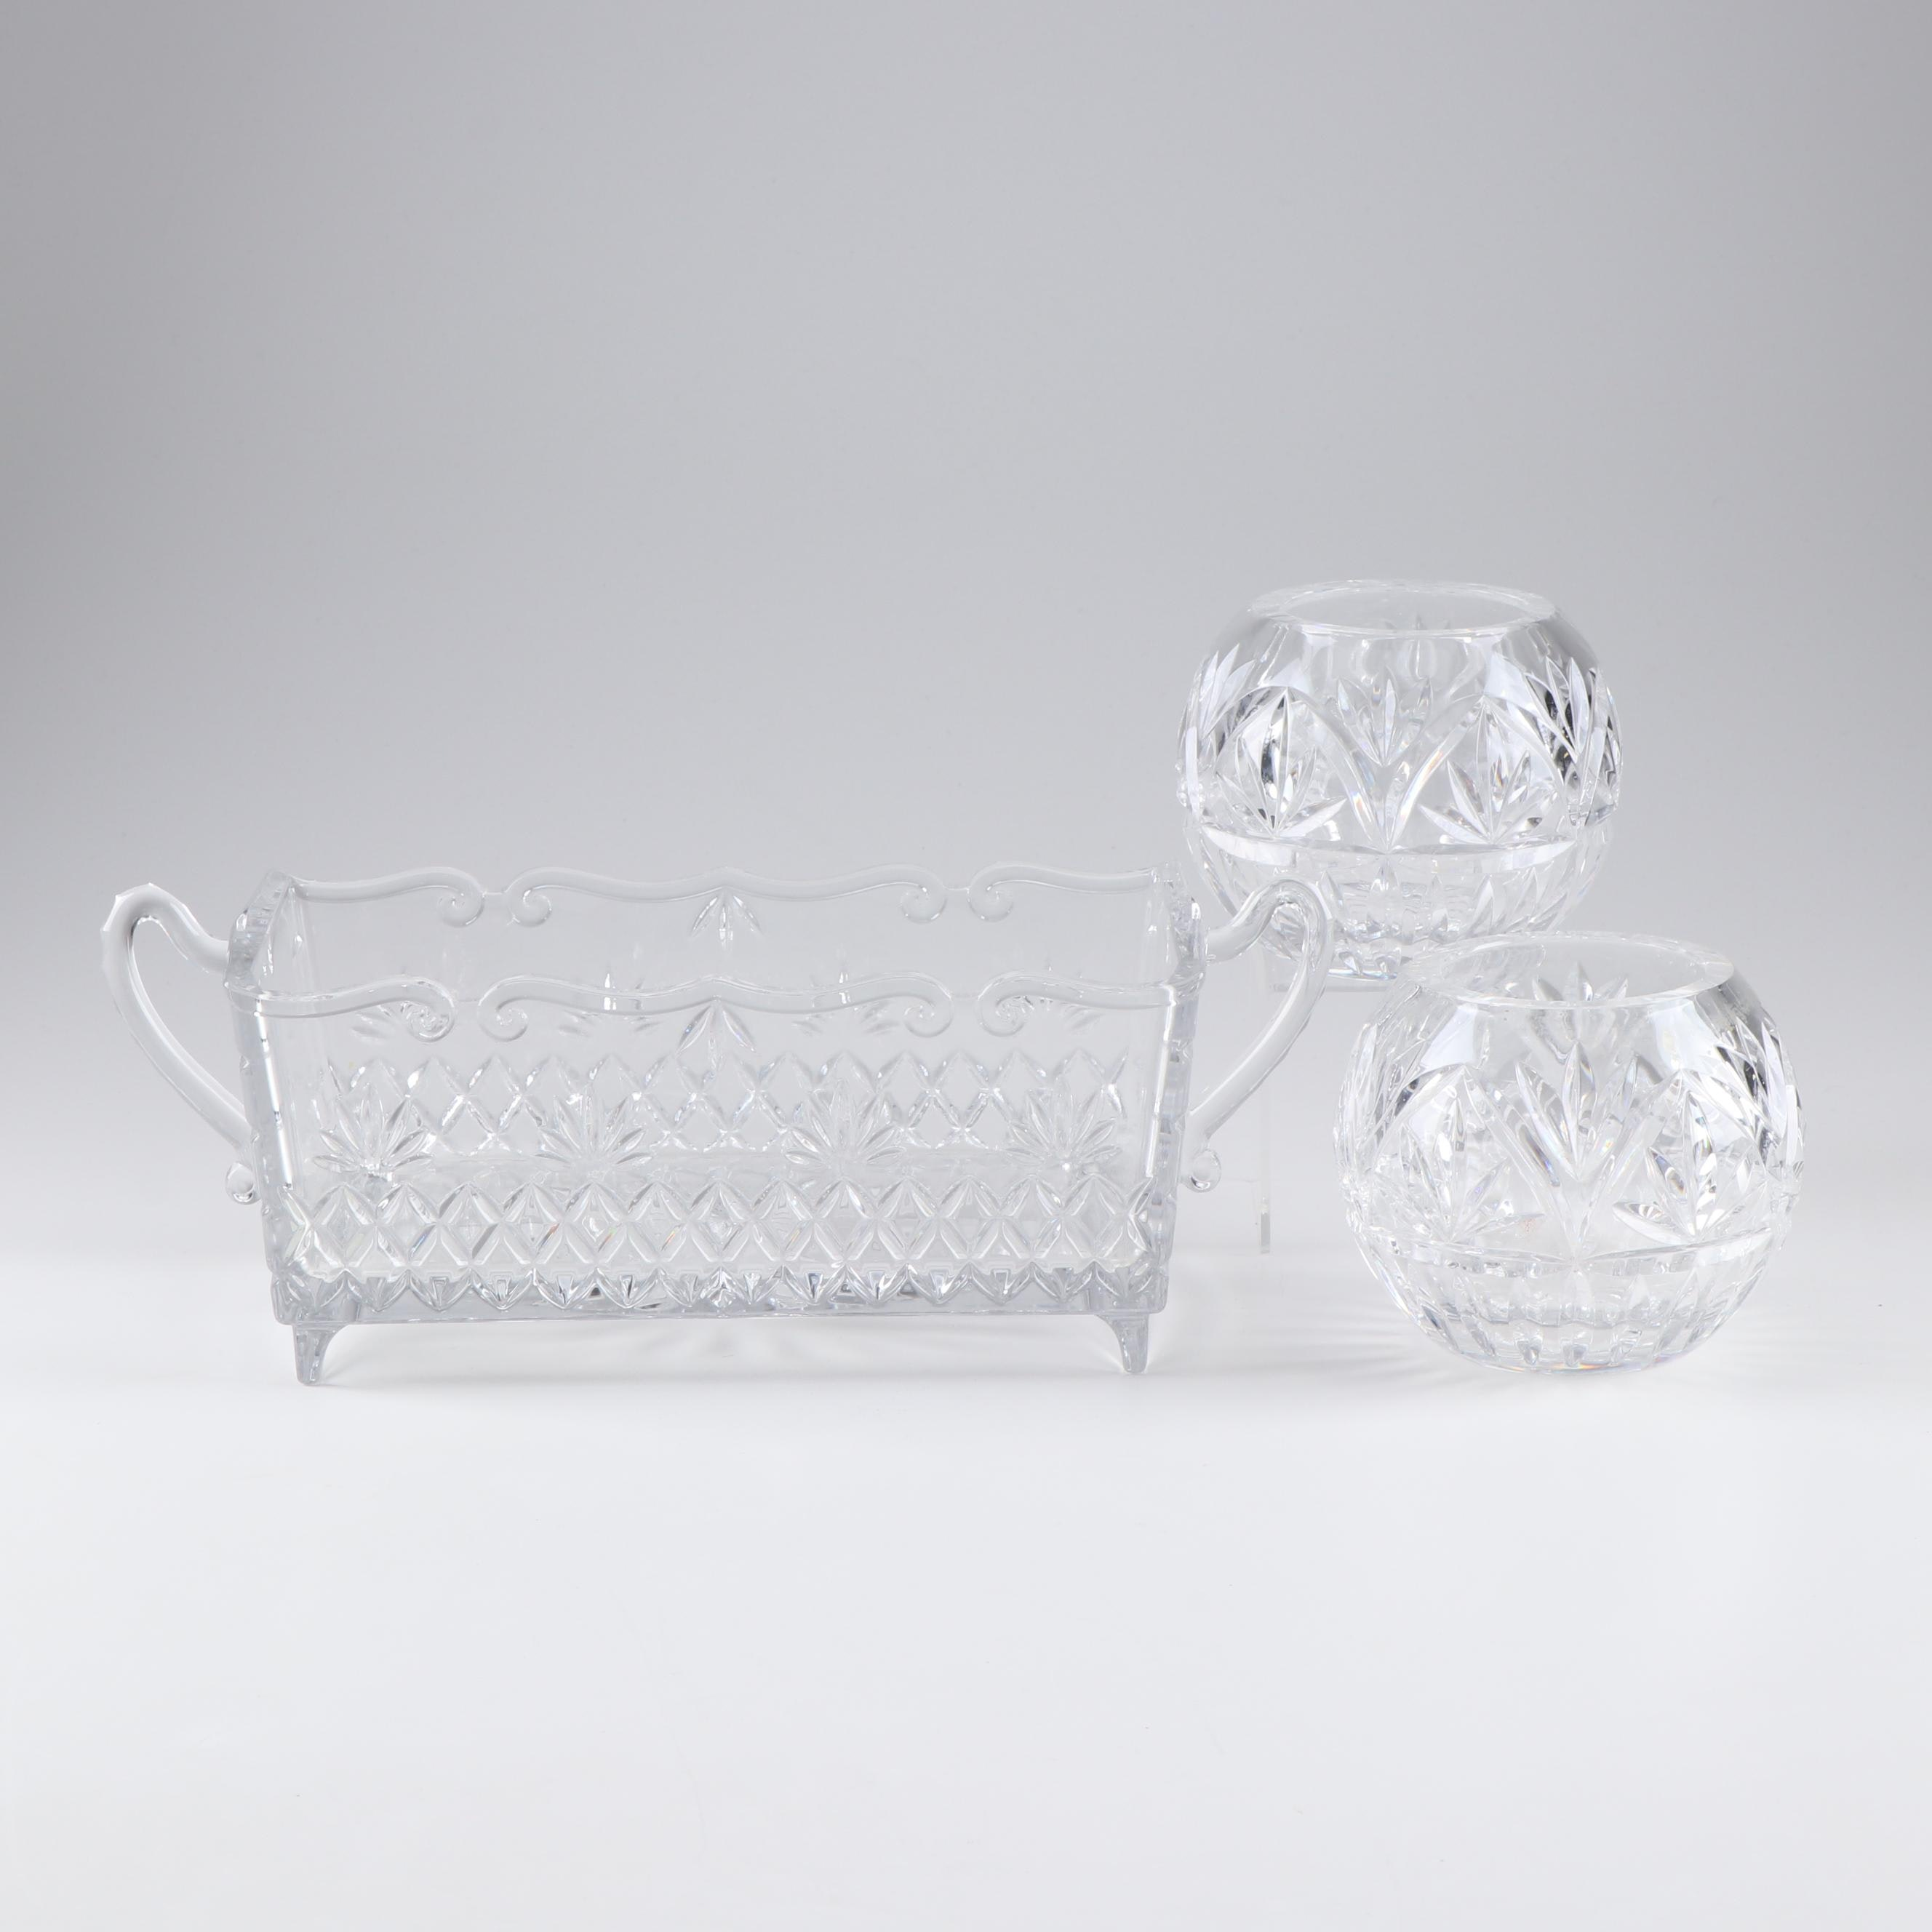 Crystal Bowl and Candle-holders Featuring Shannon Crystal